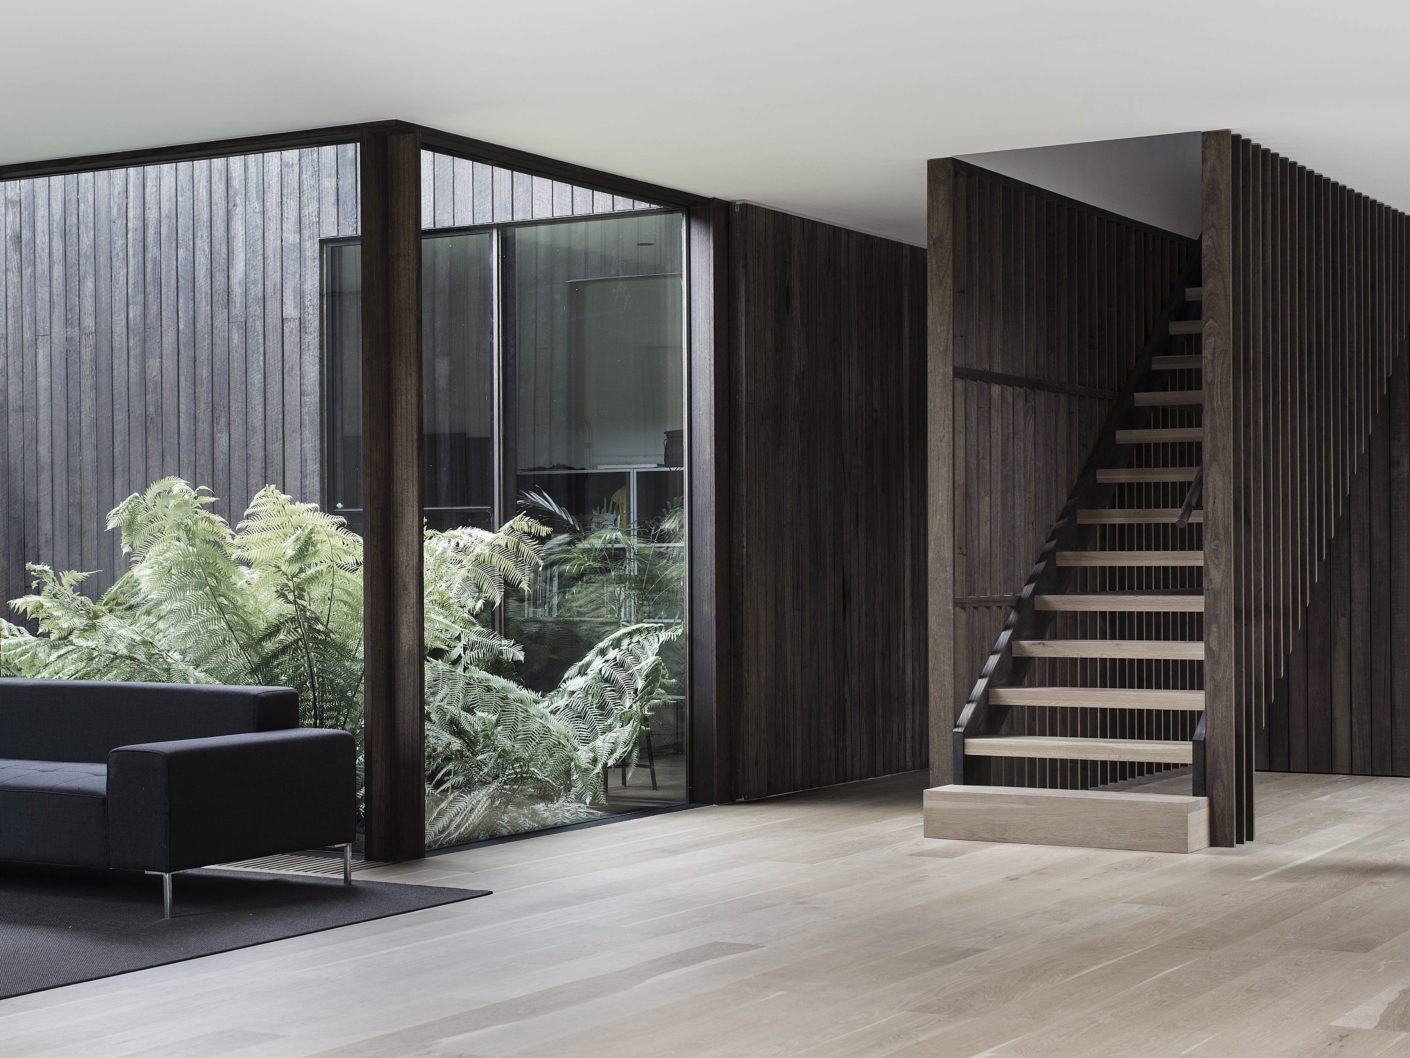 House A, Andrew Walter, Stylepark